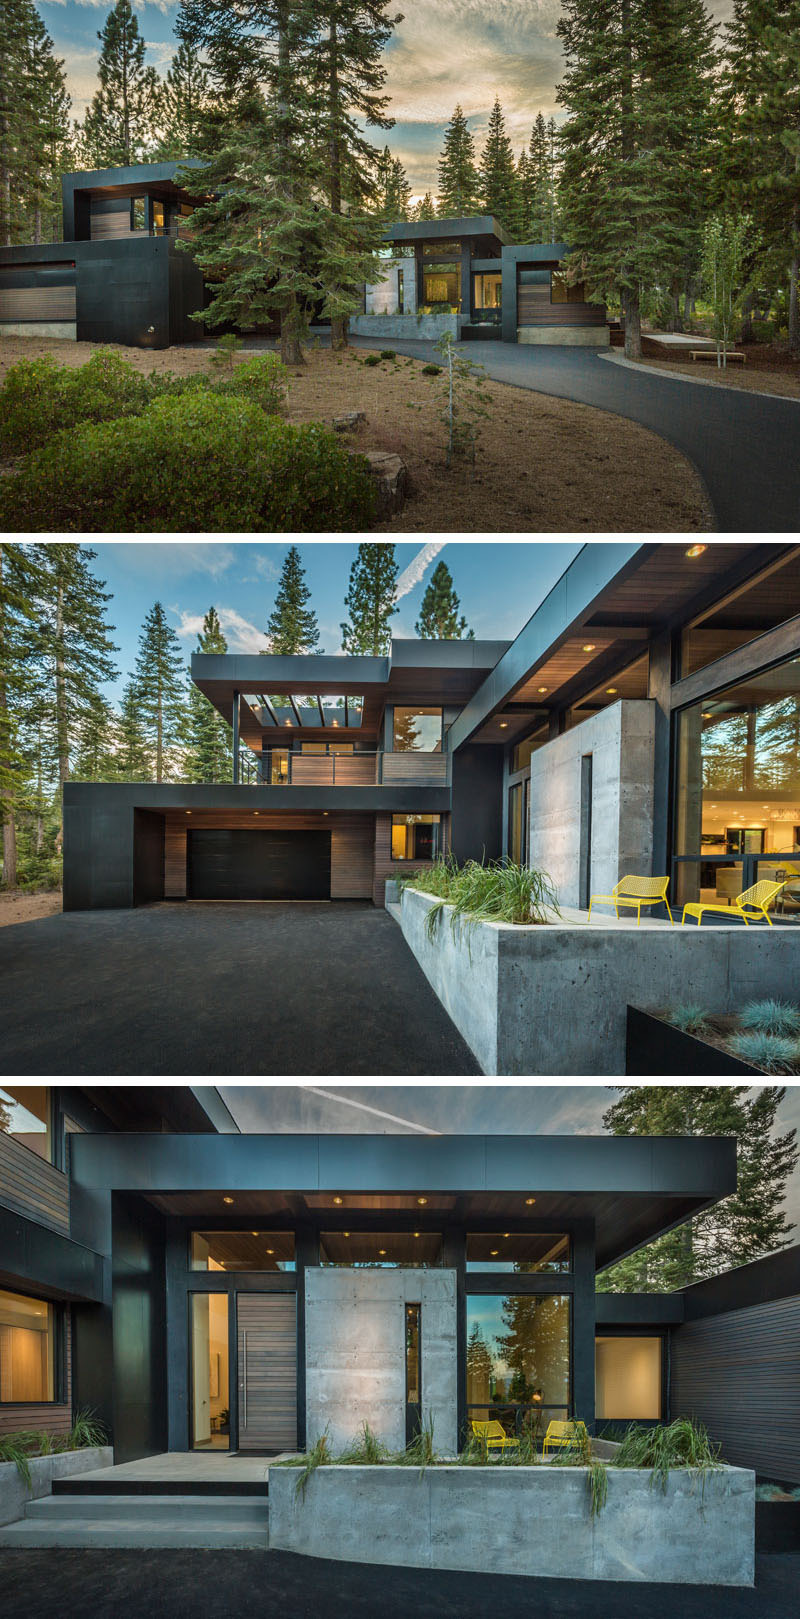 How to Build A Modern Home Best Of 15 Modern Houses to Make You Feel at Home In the forest